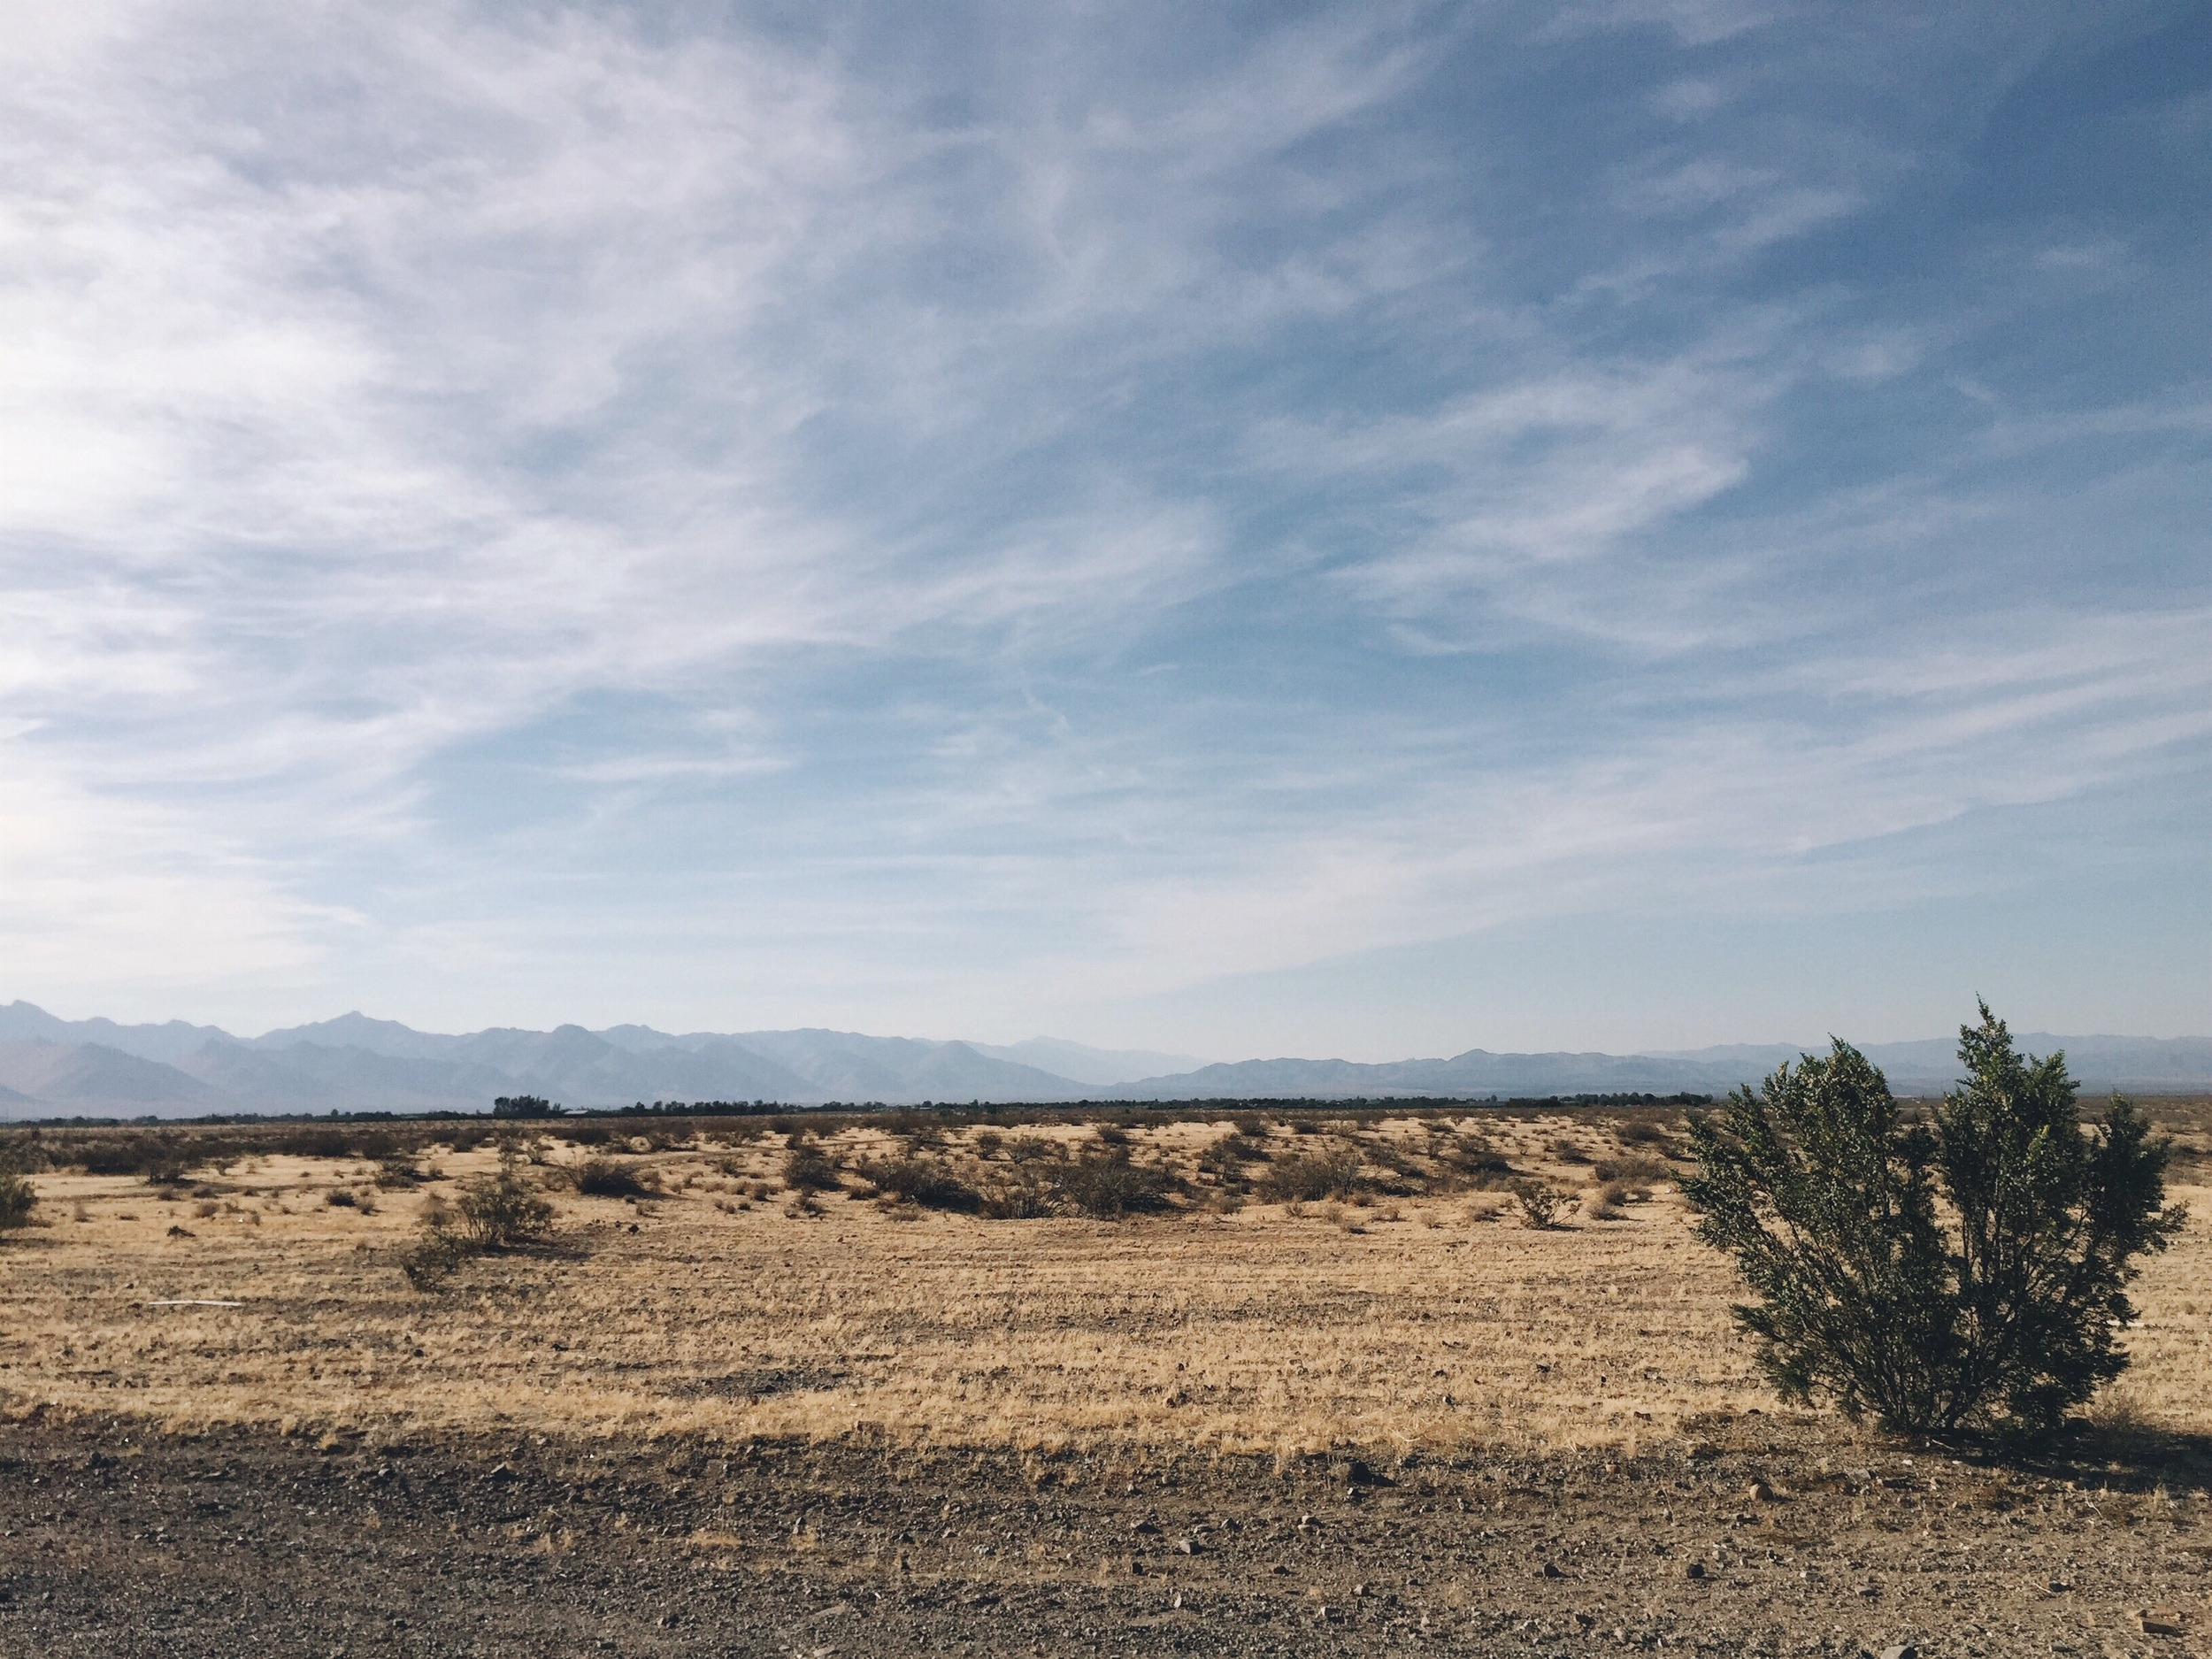 The view of the drive into the inyokern country.